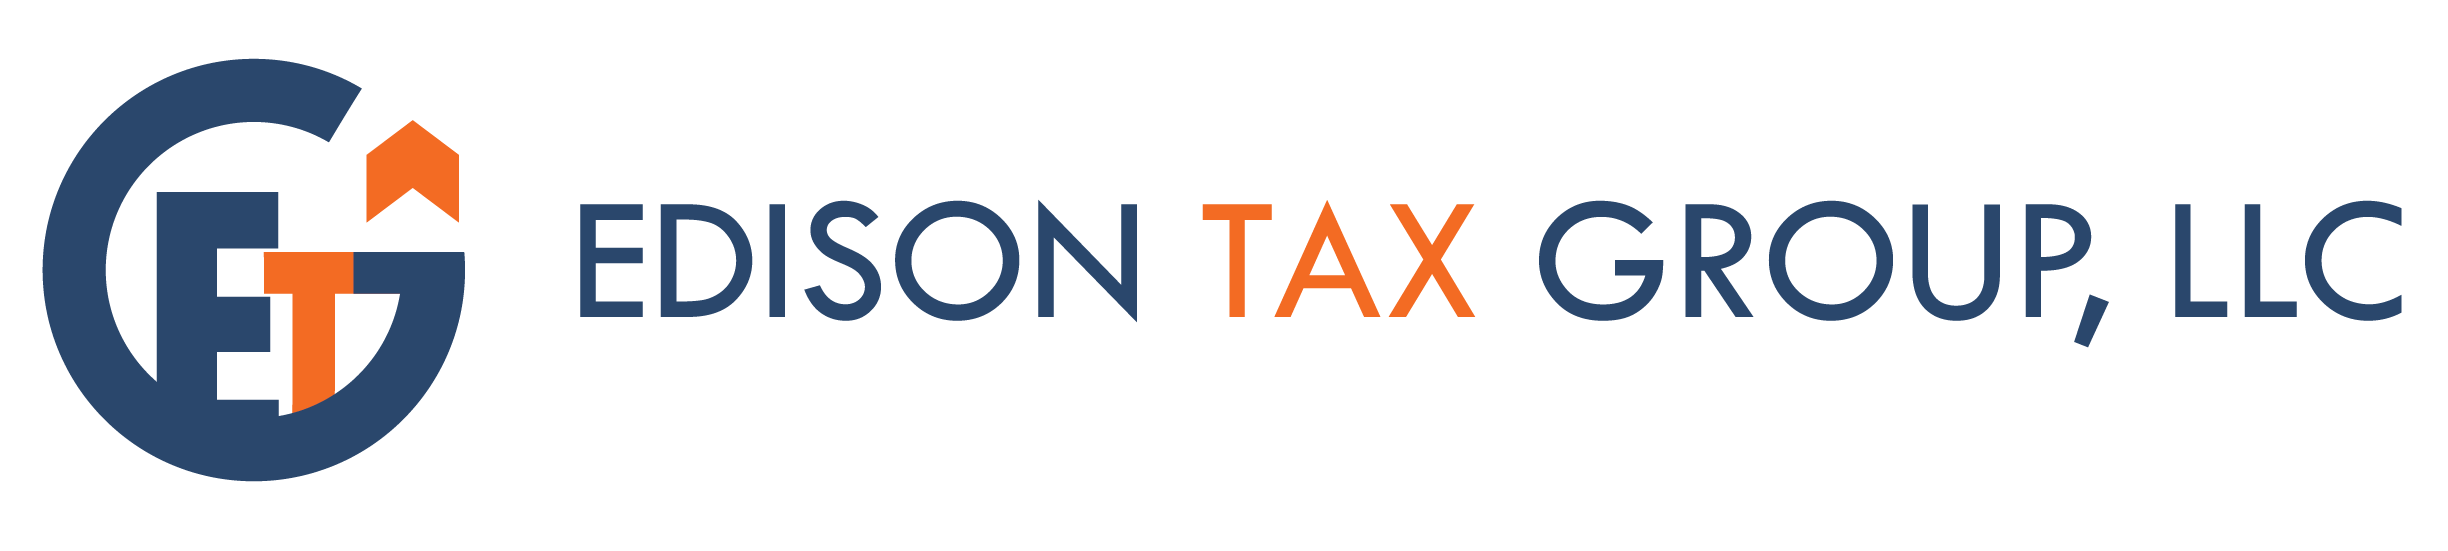 Edison tax group